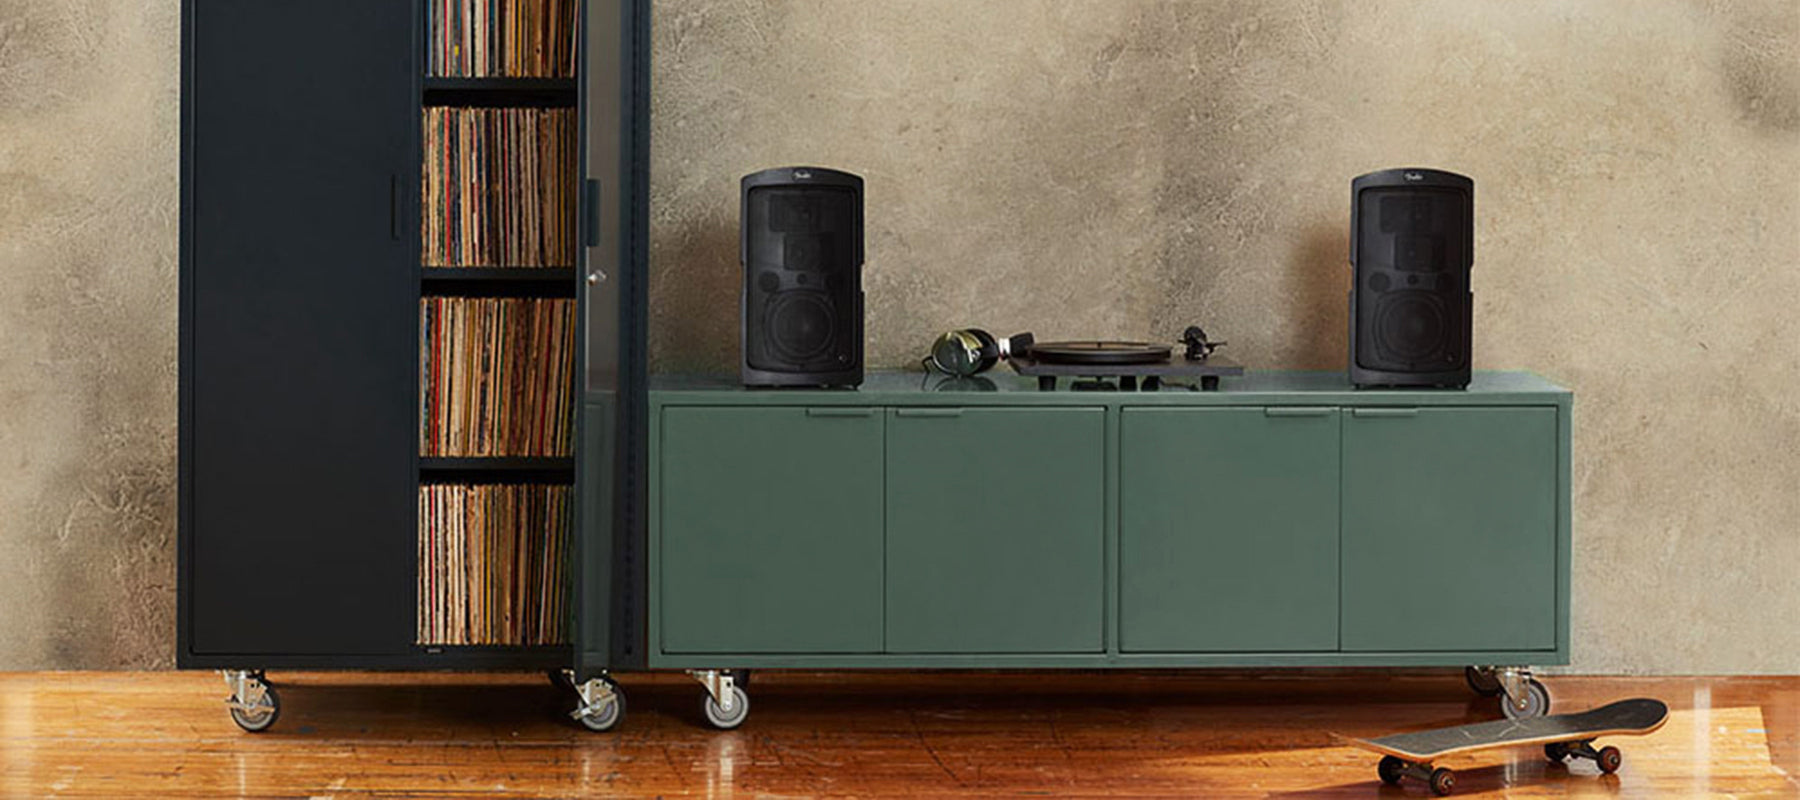 Heartwork Active Duty A/V Crdenza in deep green with speakers and record player in home setting